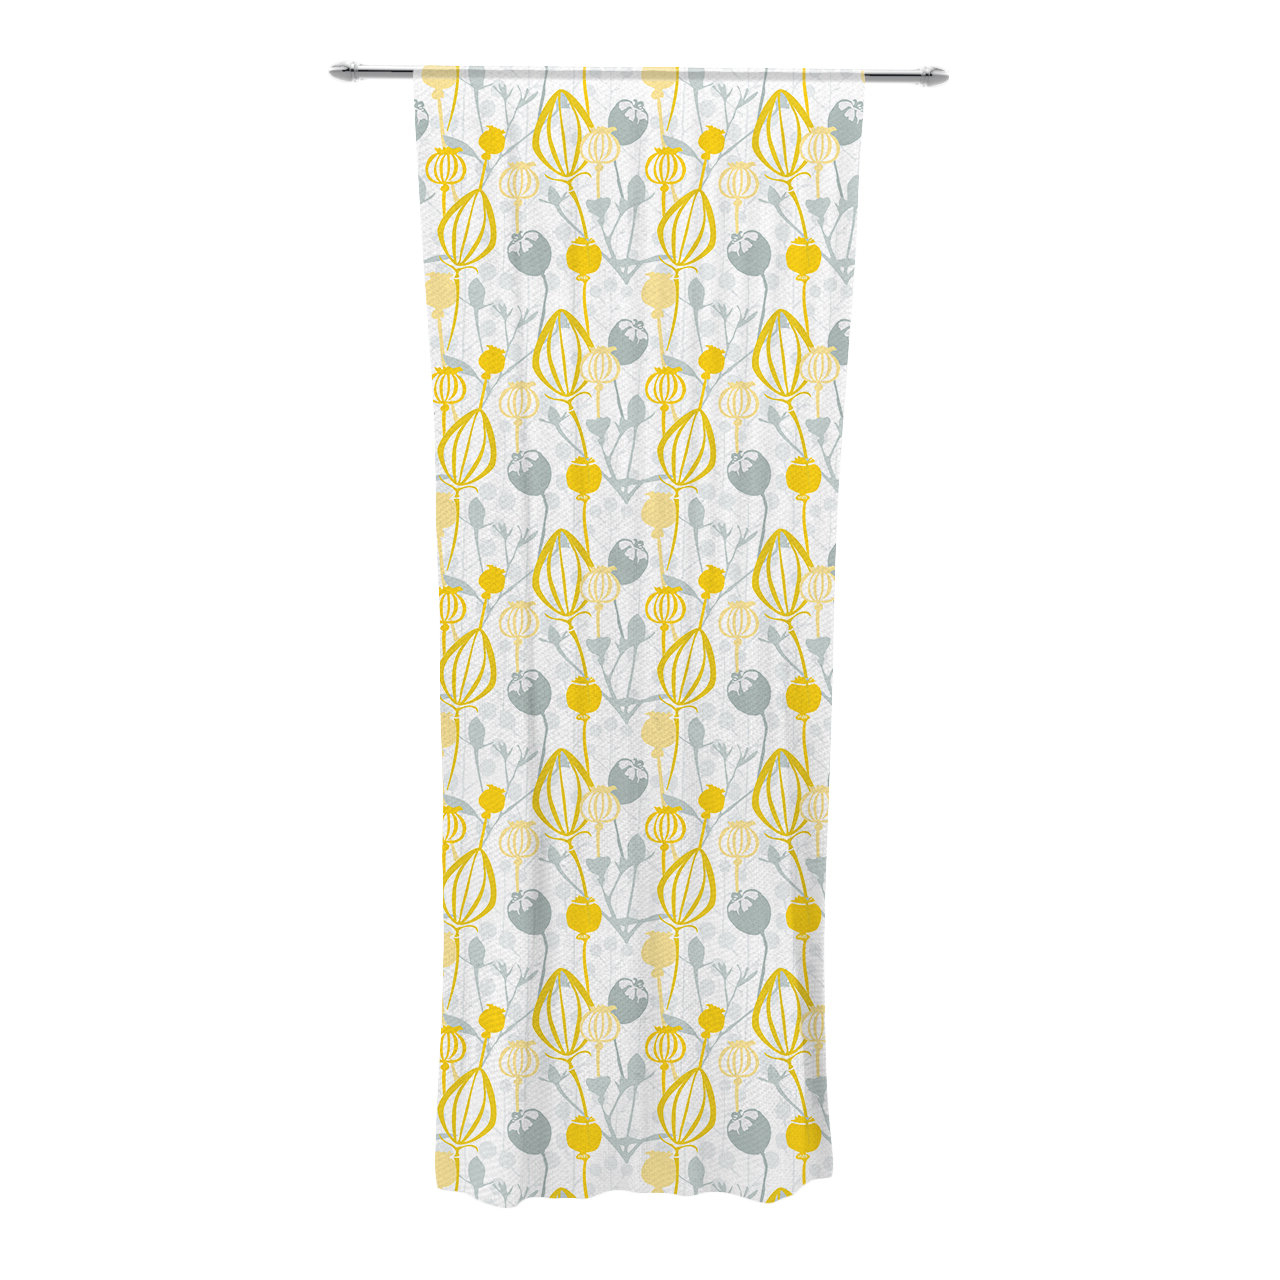 Trendy Willow Rod Pocket Window Curtain Panels Pertaining To Willow Wisp Nature / Floral Sheer Rod Pocket Curtain Panels (View 13 of 20)